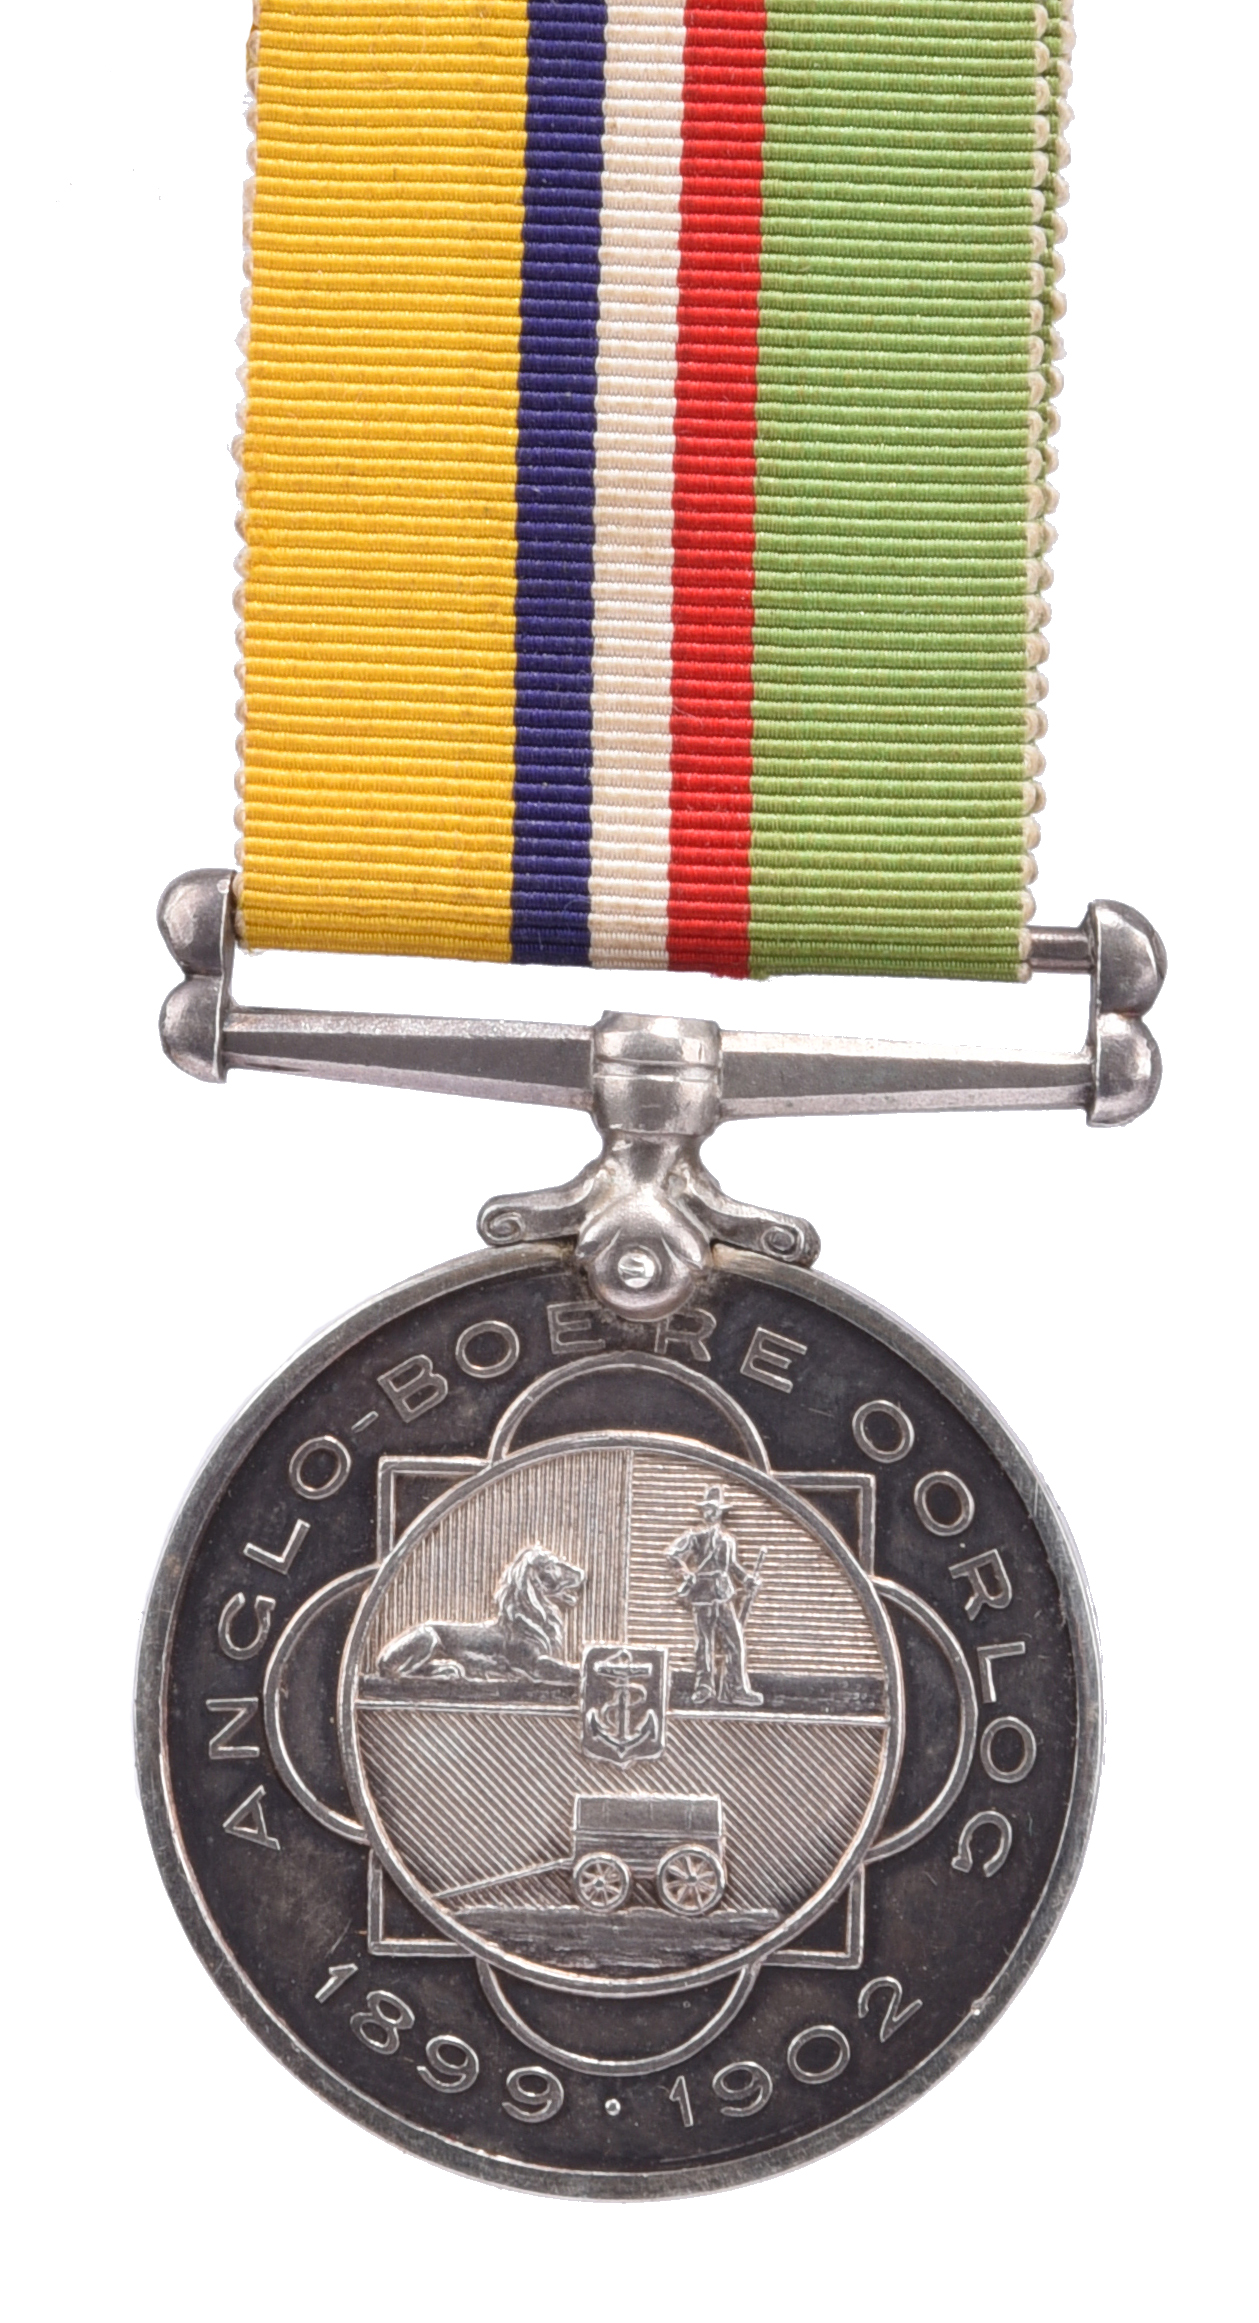 South Africa: Anglo-Boere Oorlog Medal, KORPORAAL A.C. NUNES., good extremely fine.